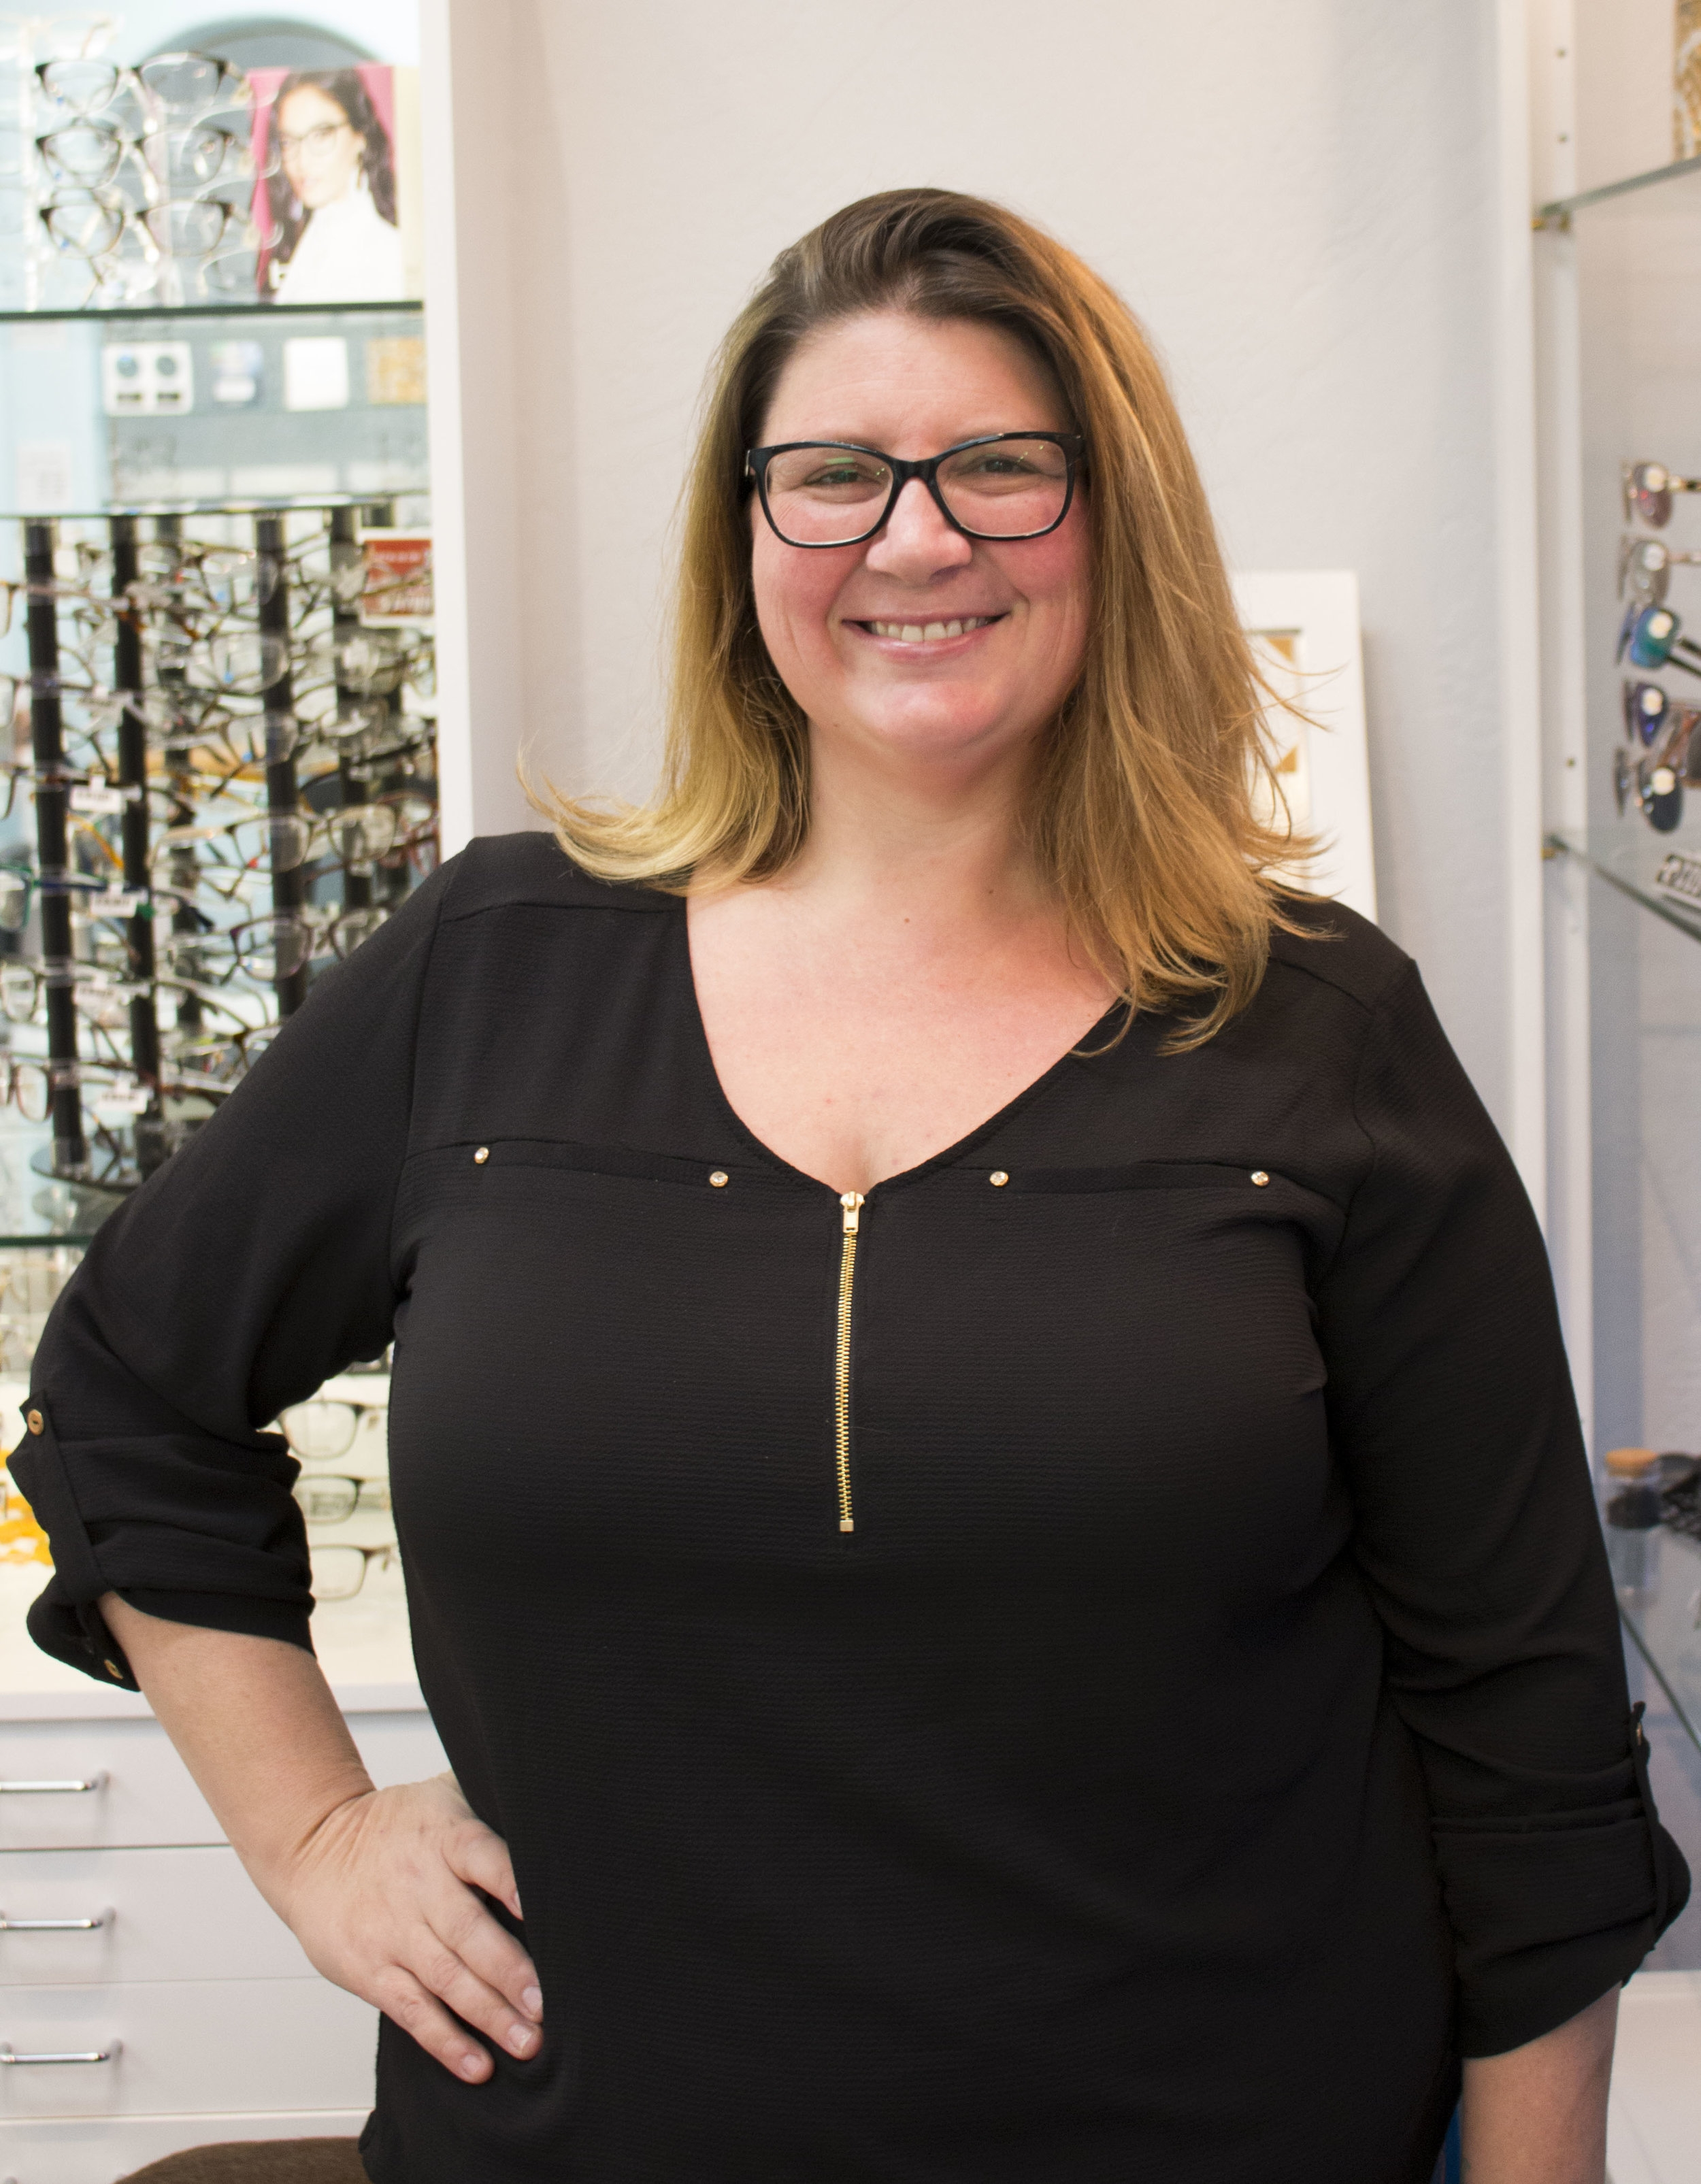 """Samantha Mineo, Office Manager - """"After 15 years, my relationship with Family Optometry Center fills my heart with joy! I love coming to work every day, my co-workers and you make the day fly by. When I am not in the office I can be found hanging out with my son, at the park with my dog or volunteering with Active 20-30. """""""